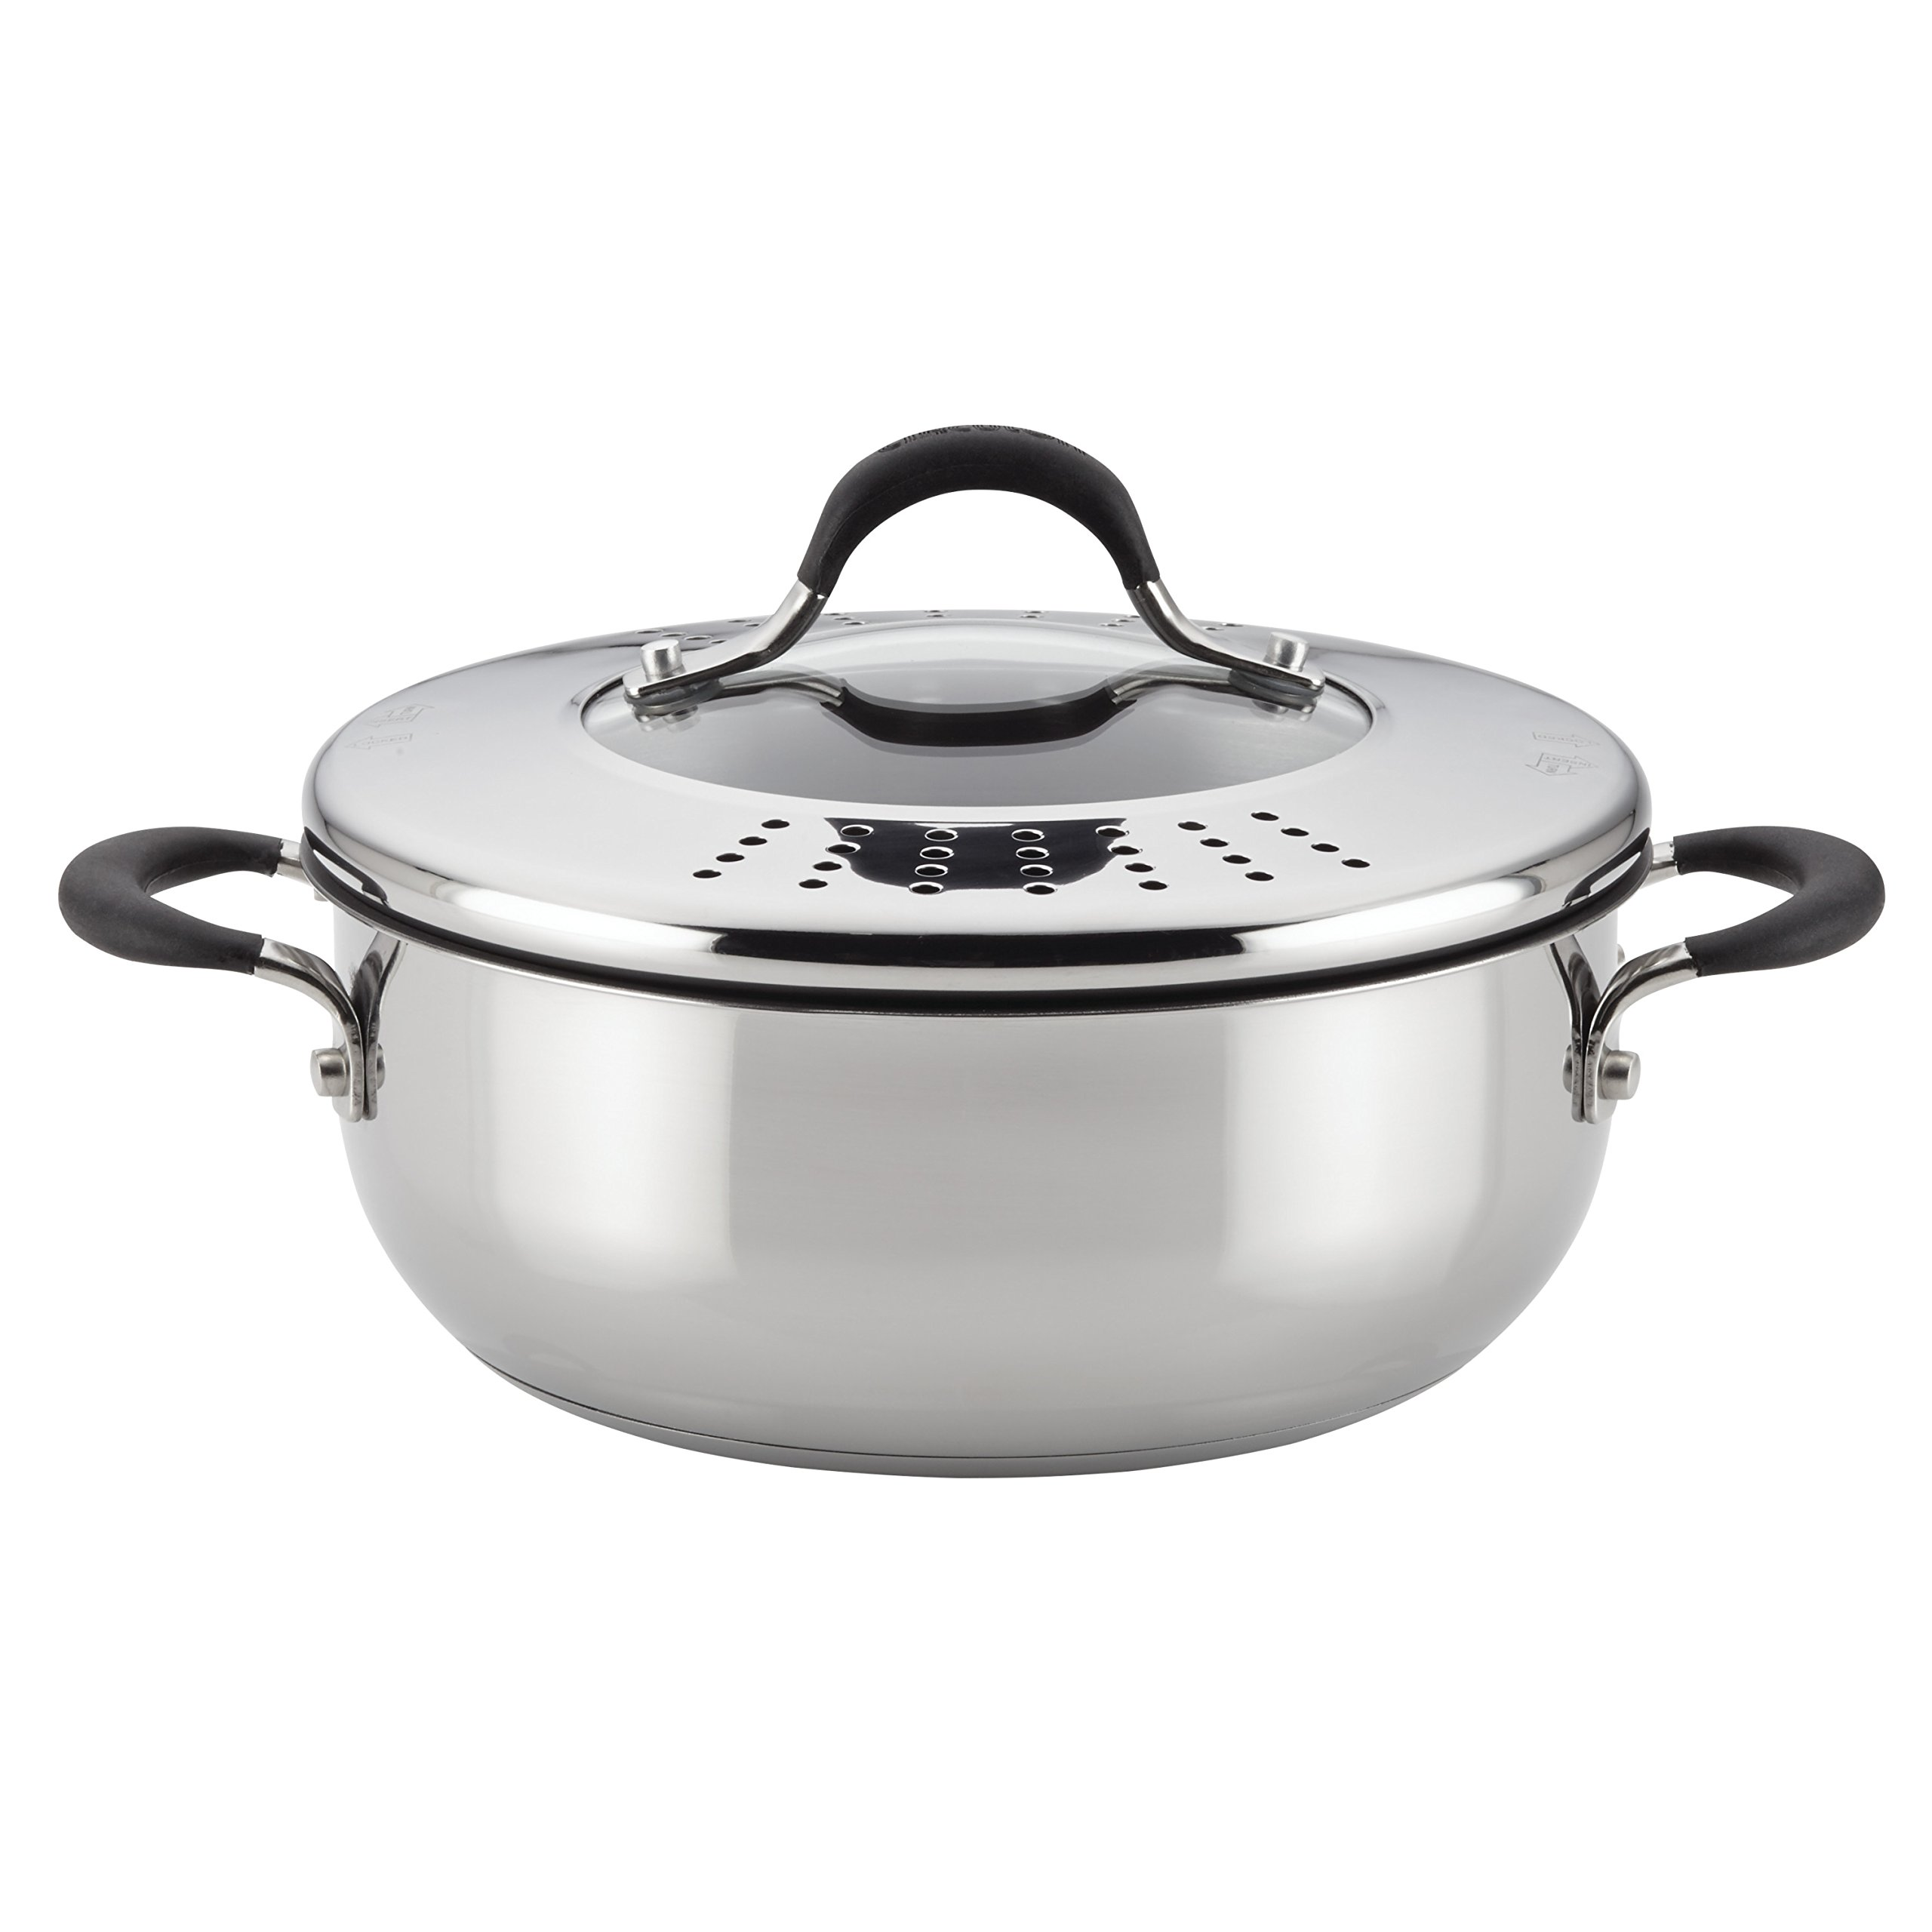 Circulon Momentum Stainless Steel Nonstick 4-Quart Covered Casserole with Locking Straining Lid